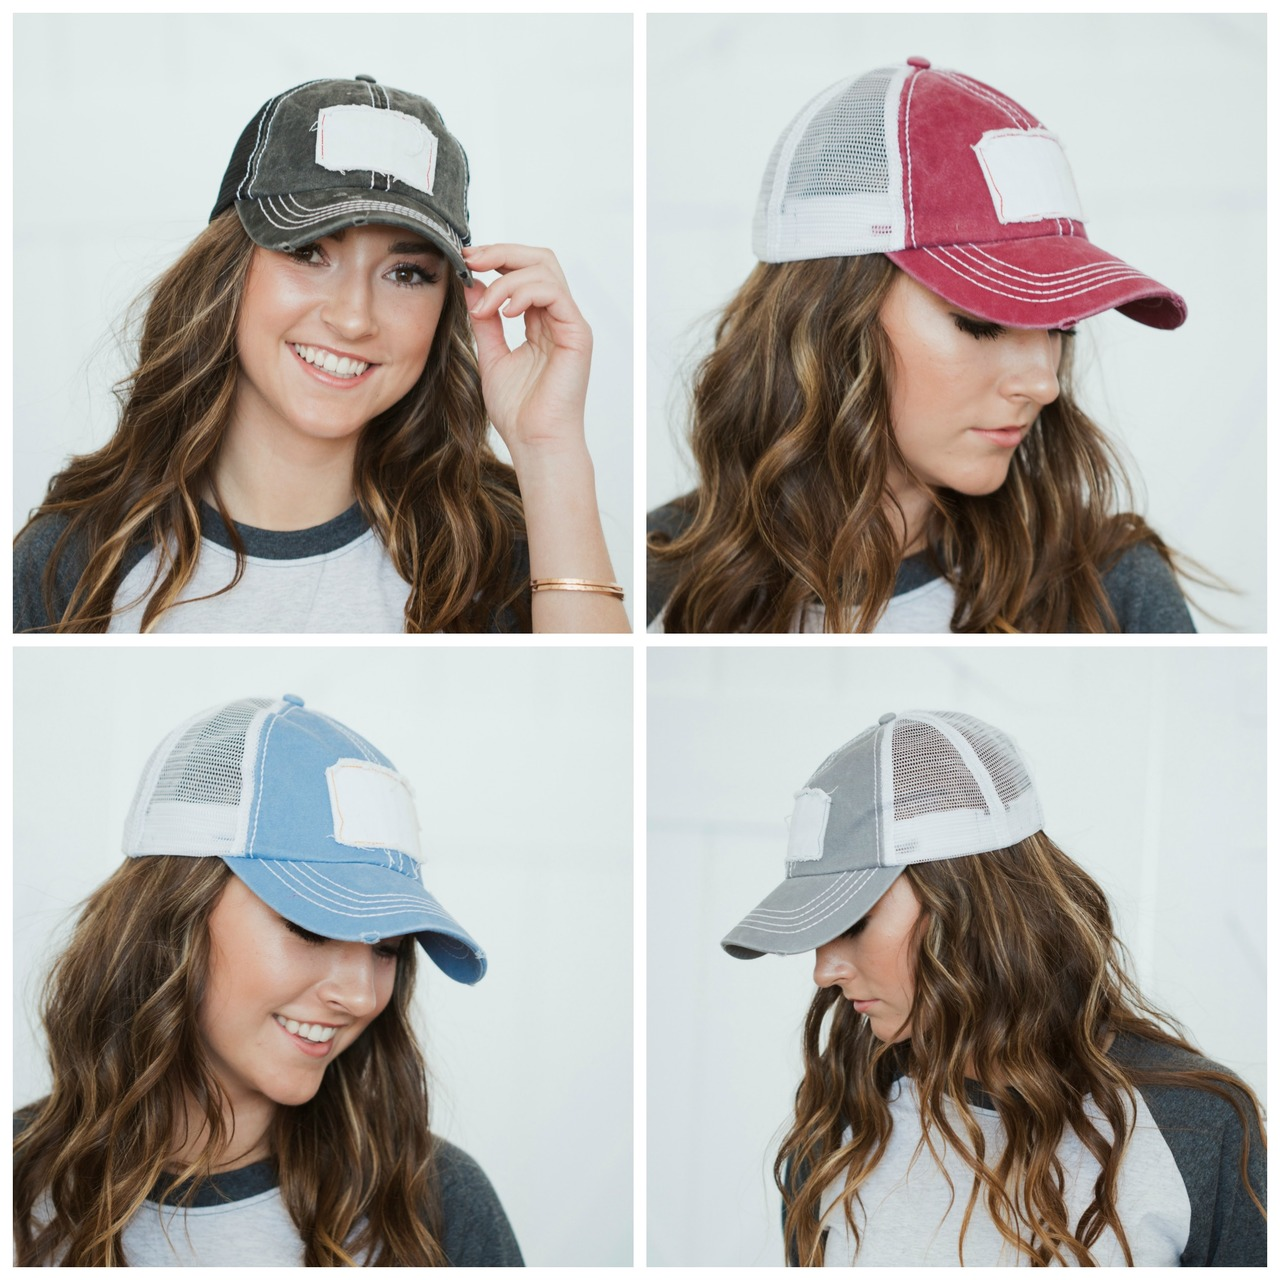 a85cfd7e Patch_Distressed_Hats_collage_mvd_myvinyldirect__54605.1551377941.jpg?c=2